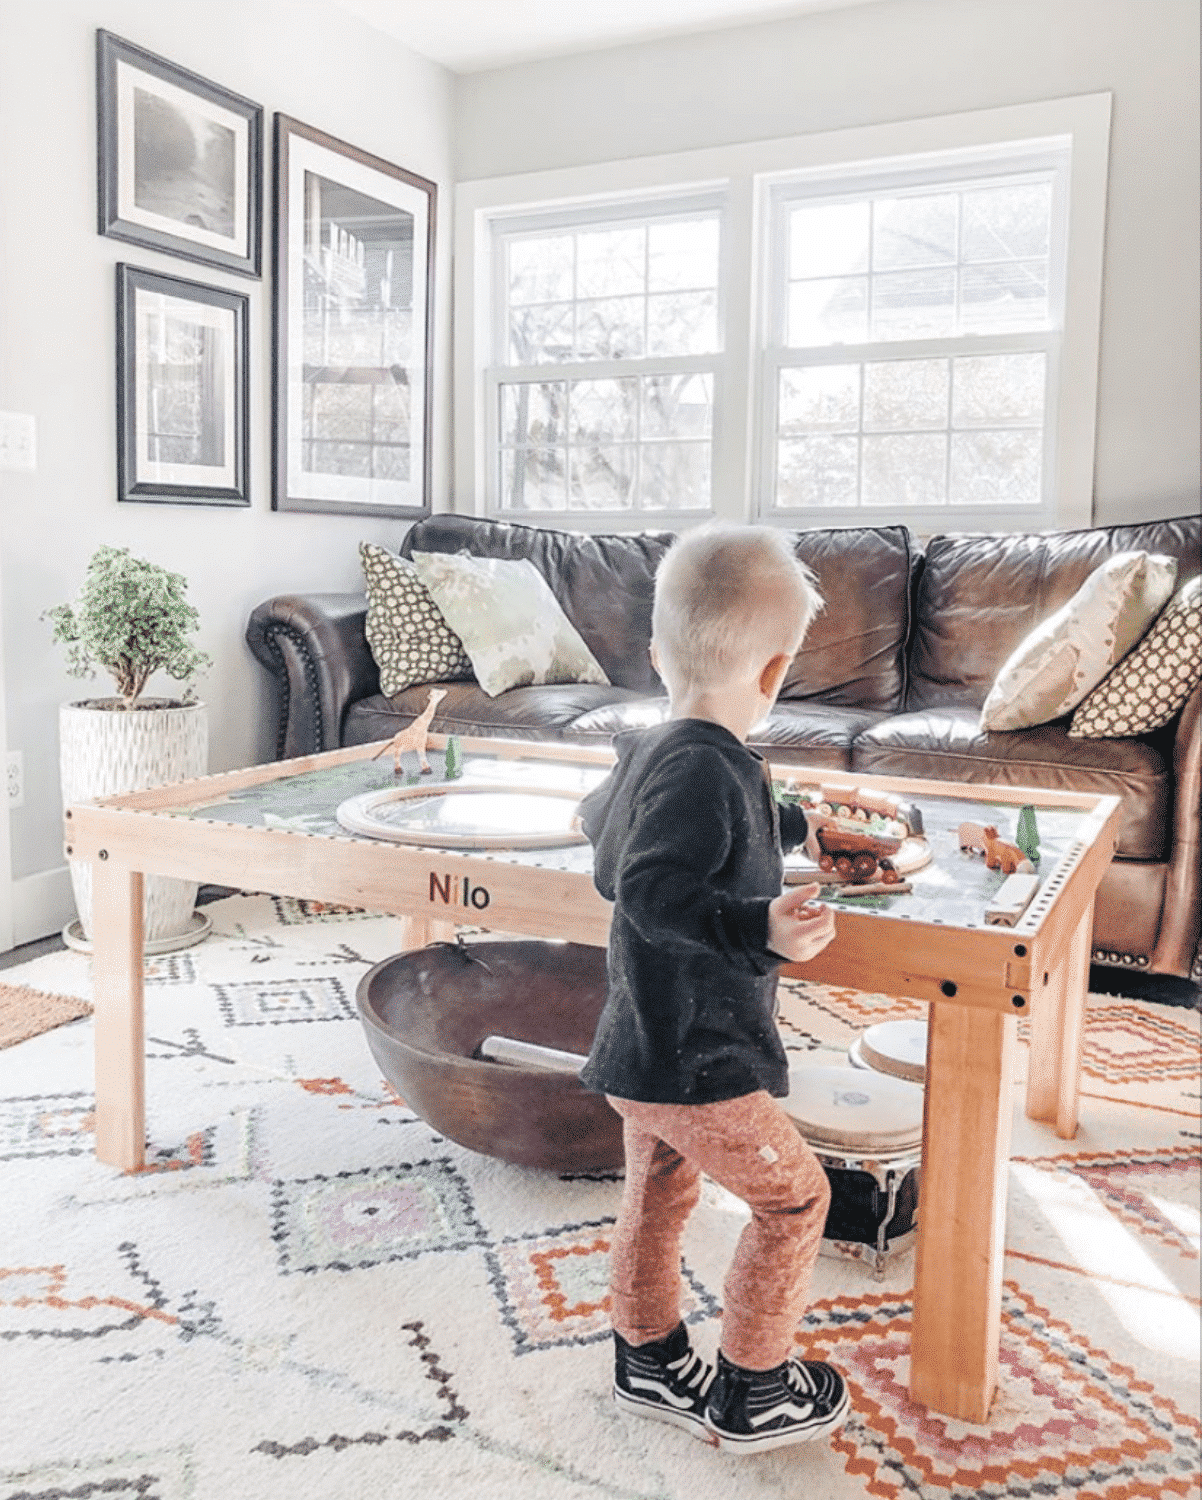 Toddler playing with toy train set on a Nilo childrens play table